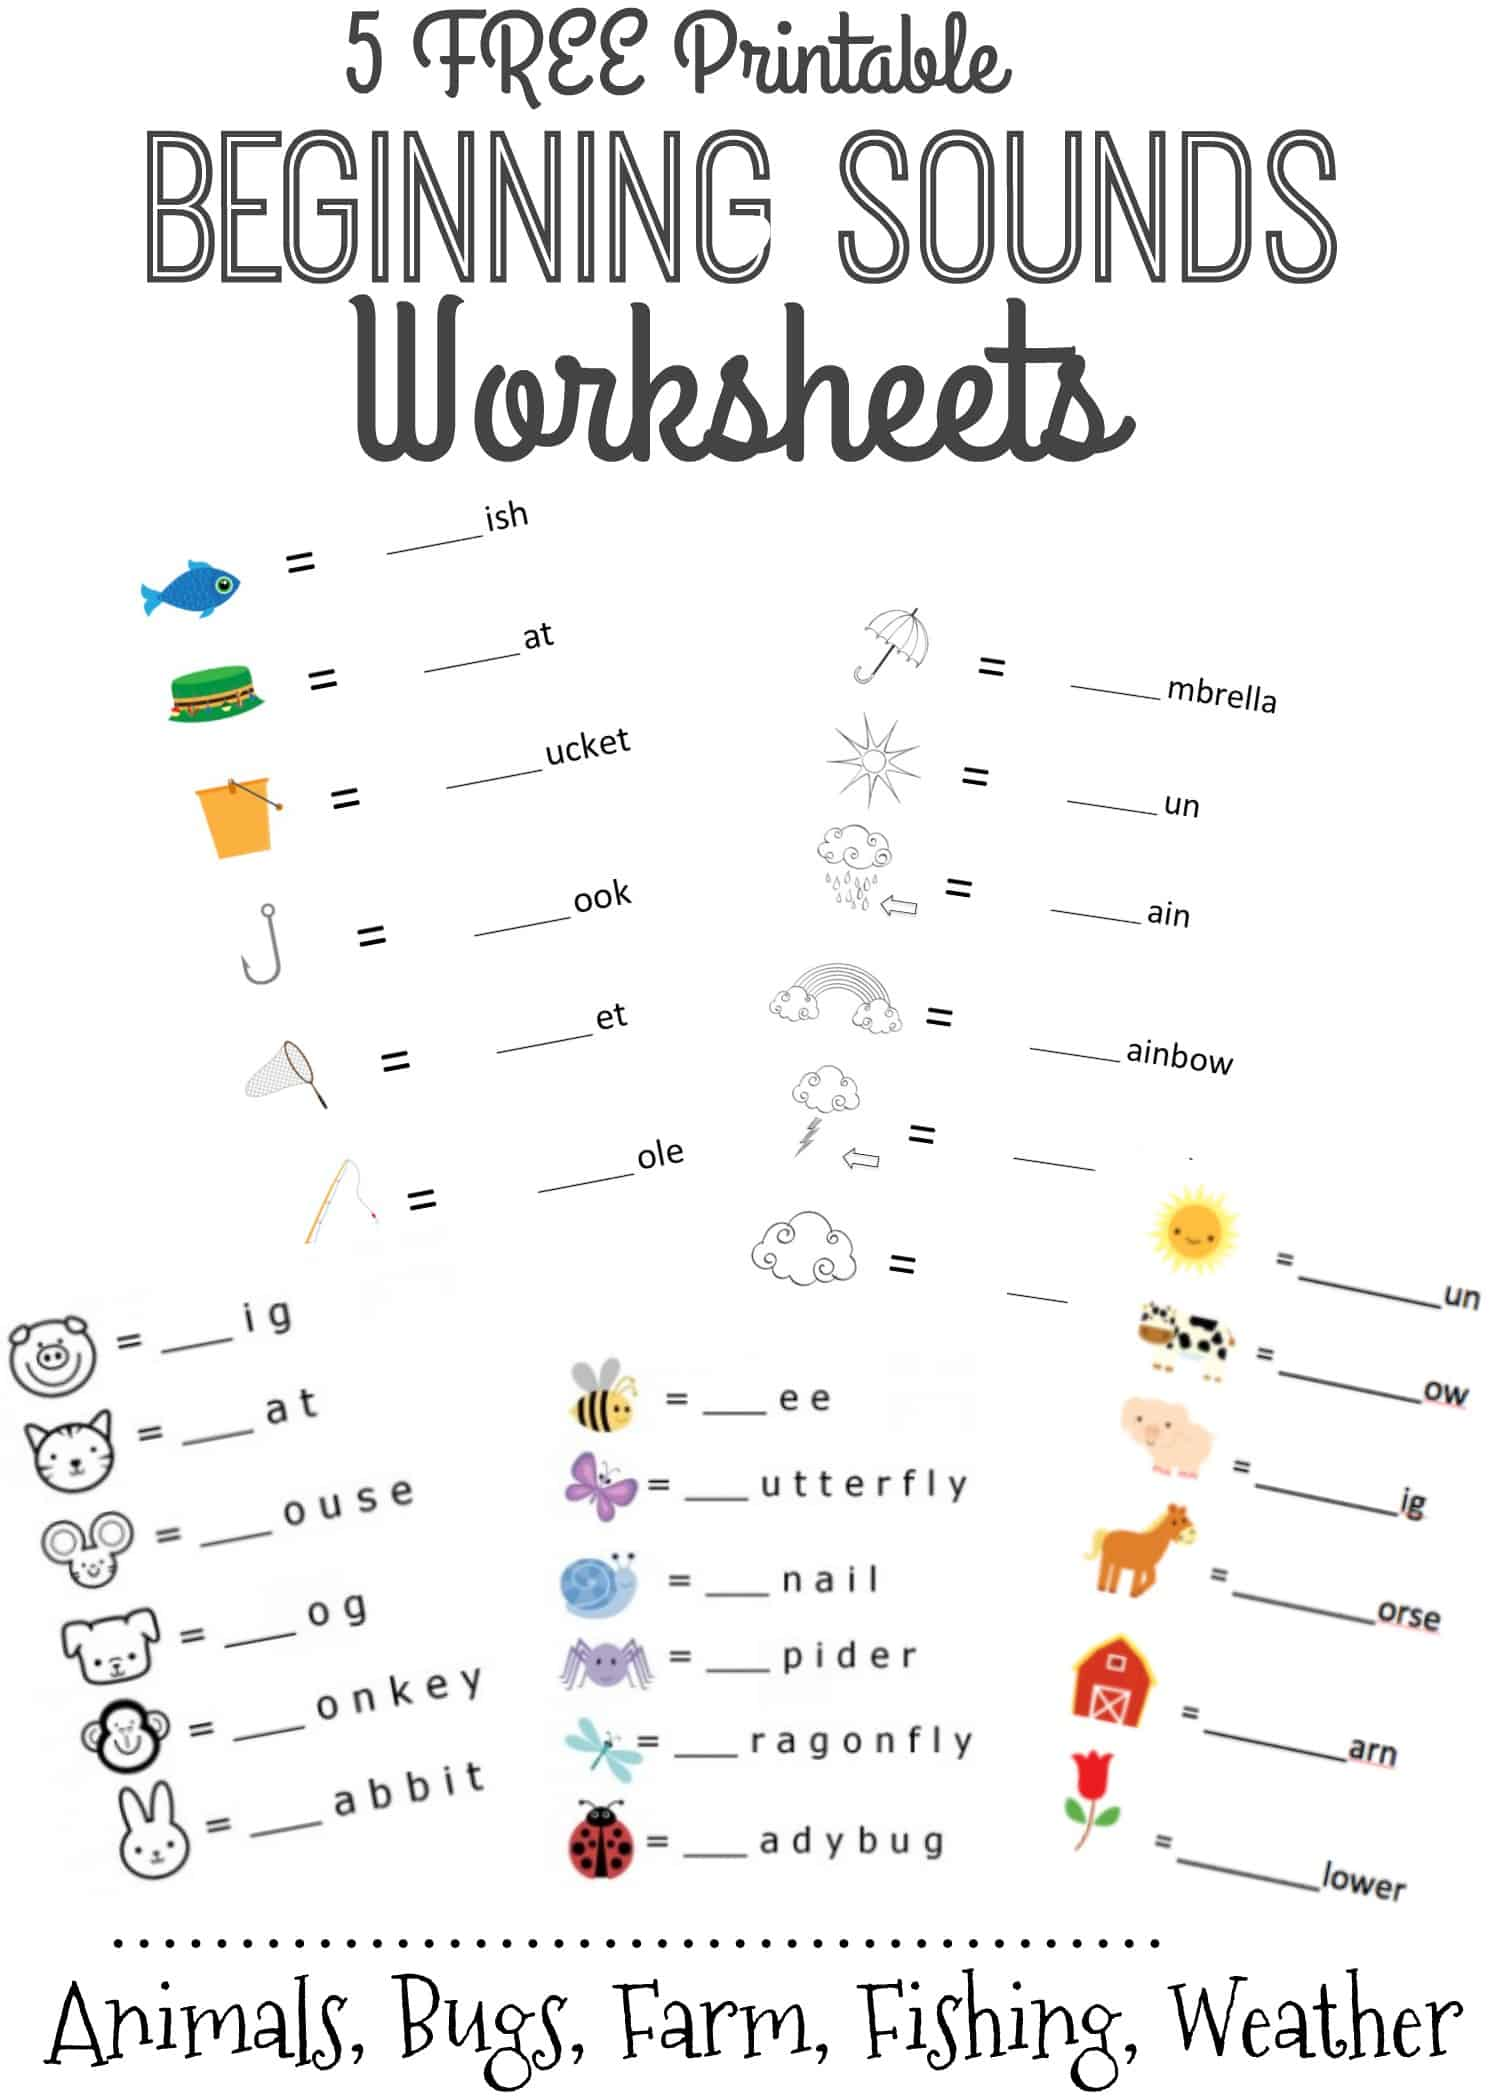 Free Beginning Sounds Printable Worksheet Klm